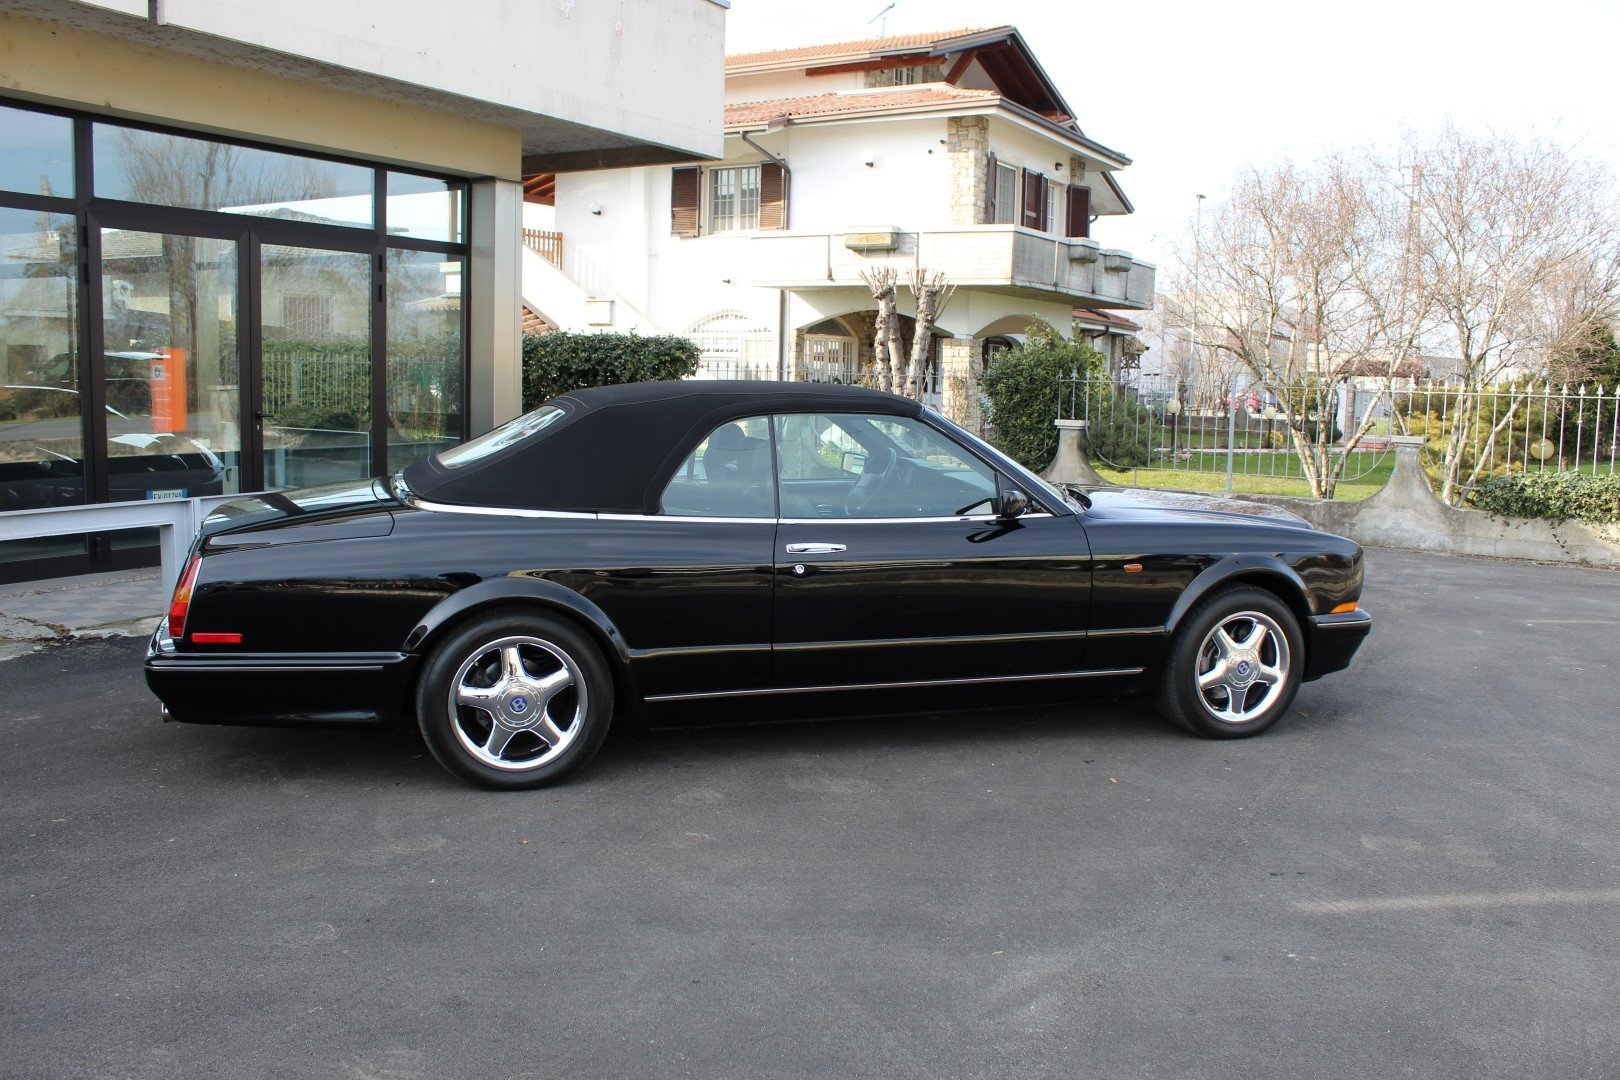 1999 Bentley Azure Mulliner - Wide Body - 426HP For Sale (picture 2 of 6)